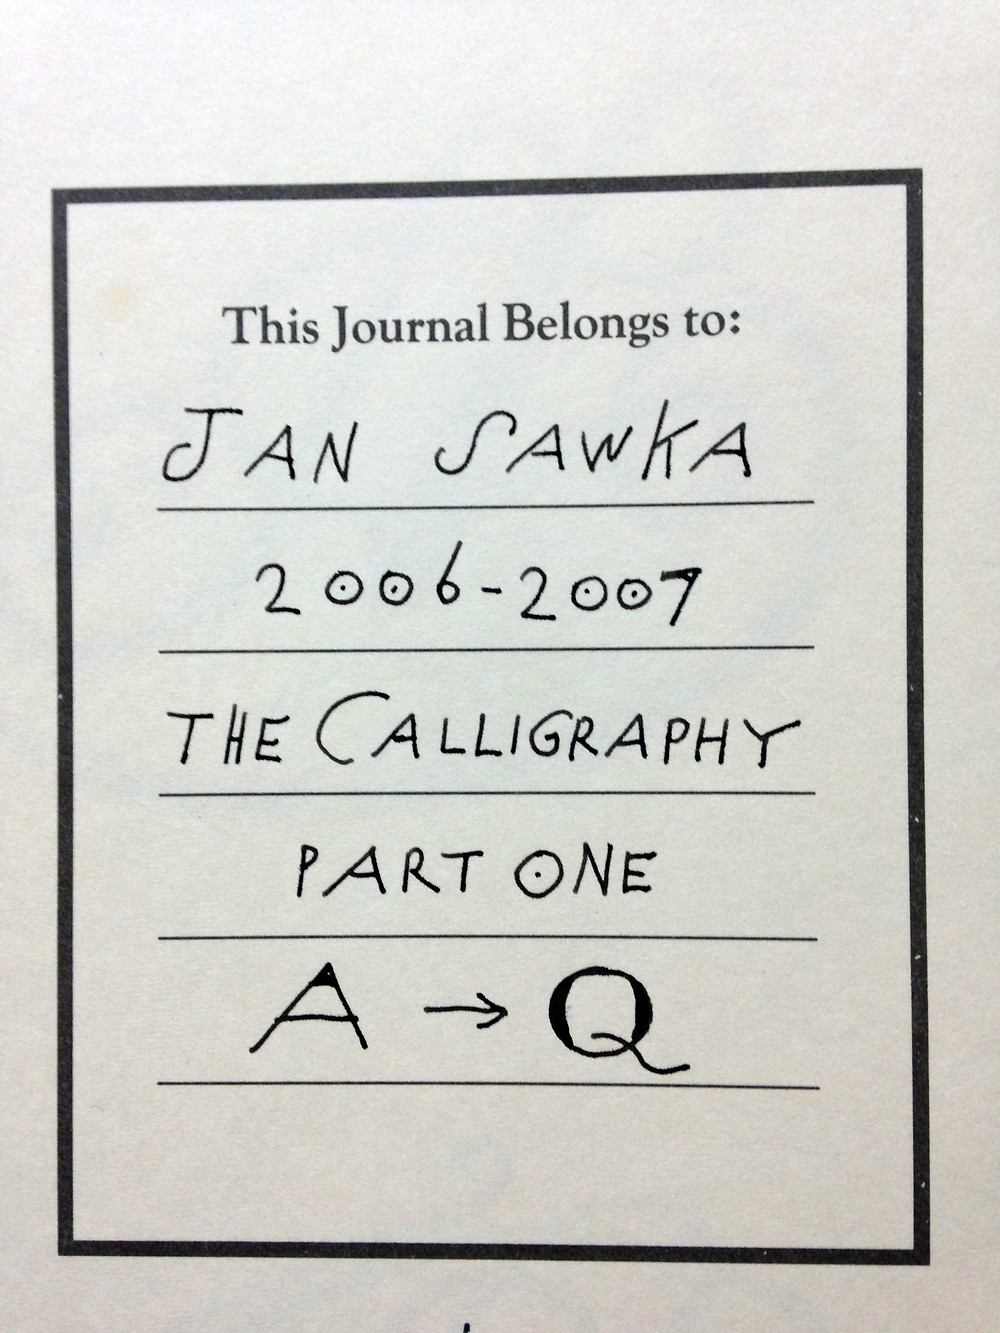 Sawka's personal journals about calligraphy